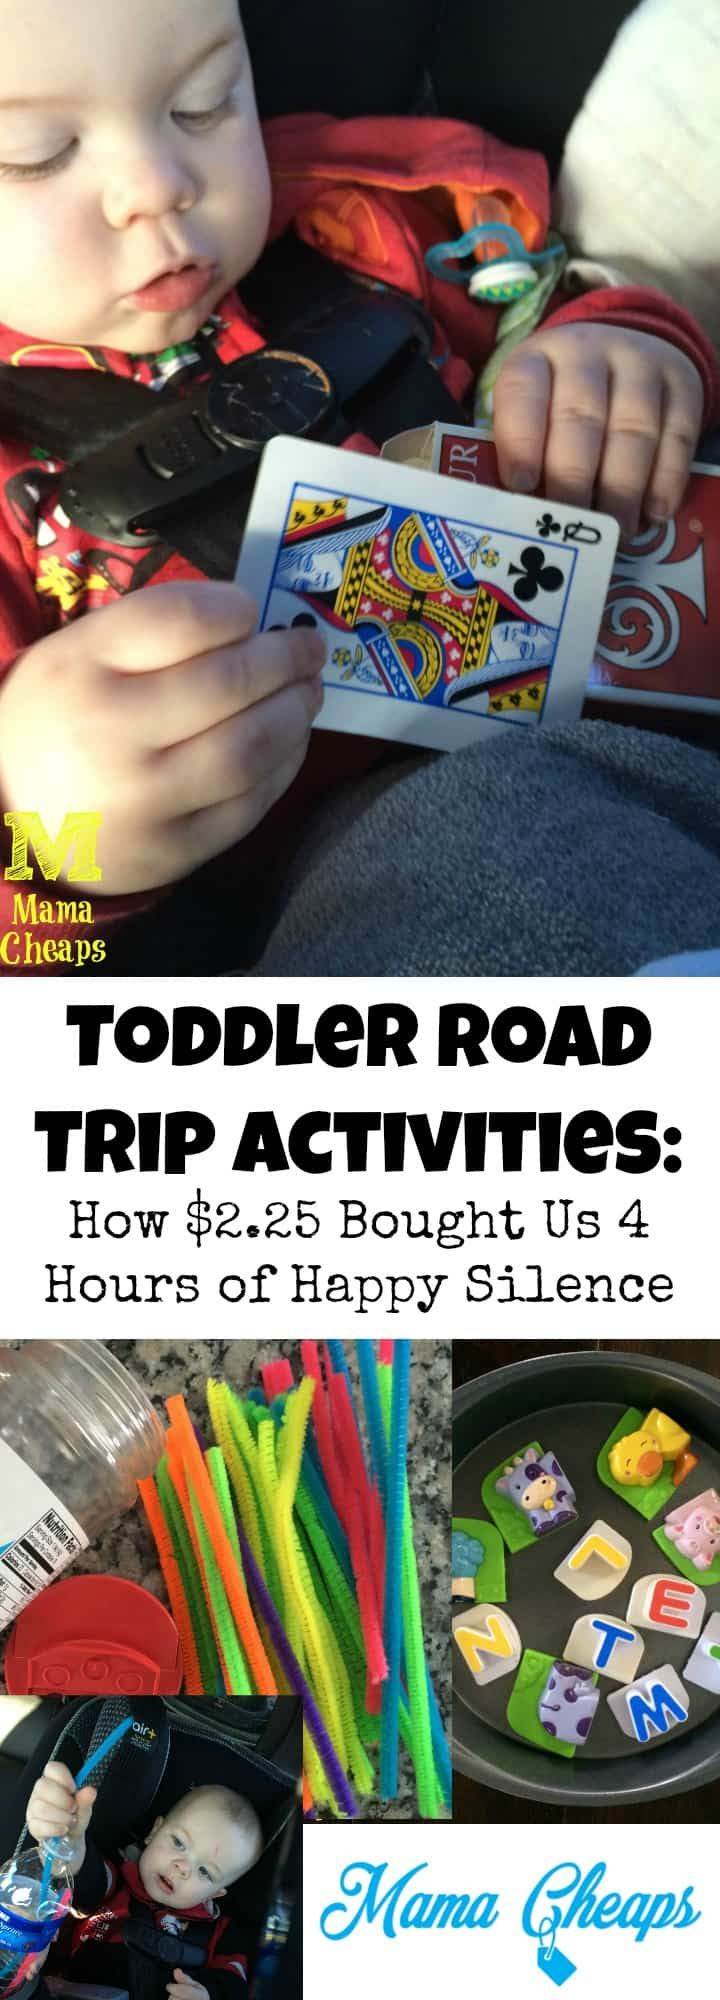 Toddler Road Trip Activities: How $2.25 Bought Us 4 Hours of Happy Silence | Mama Cheaps®